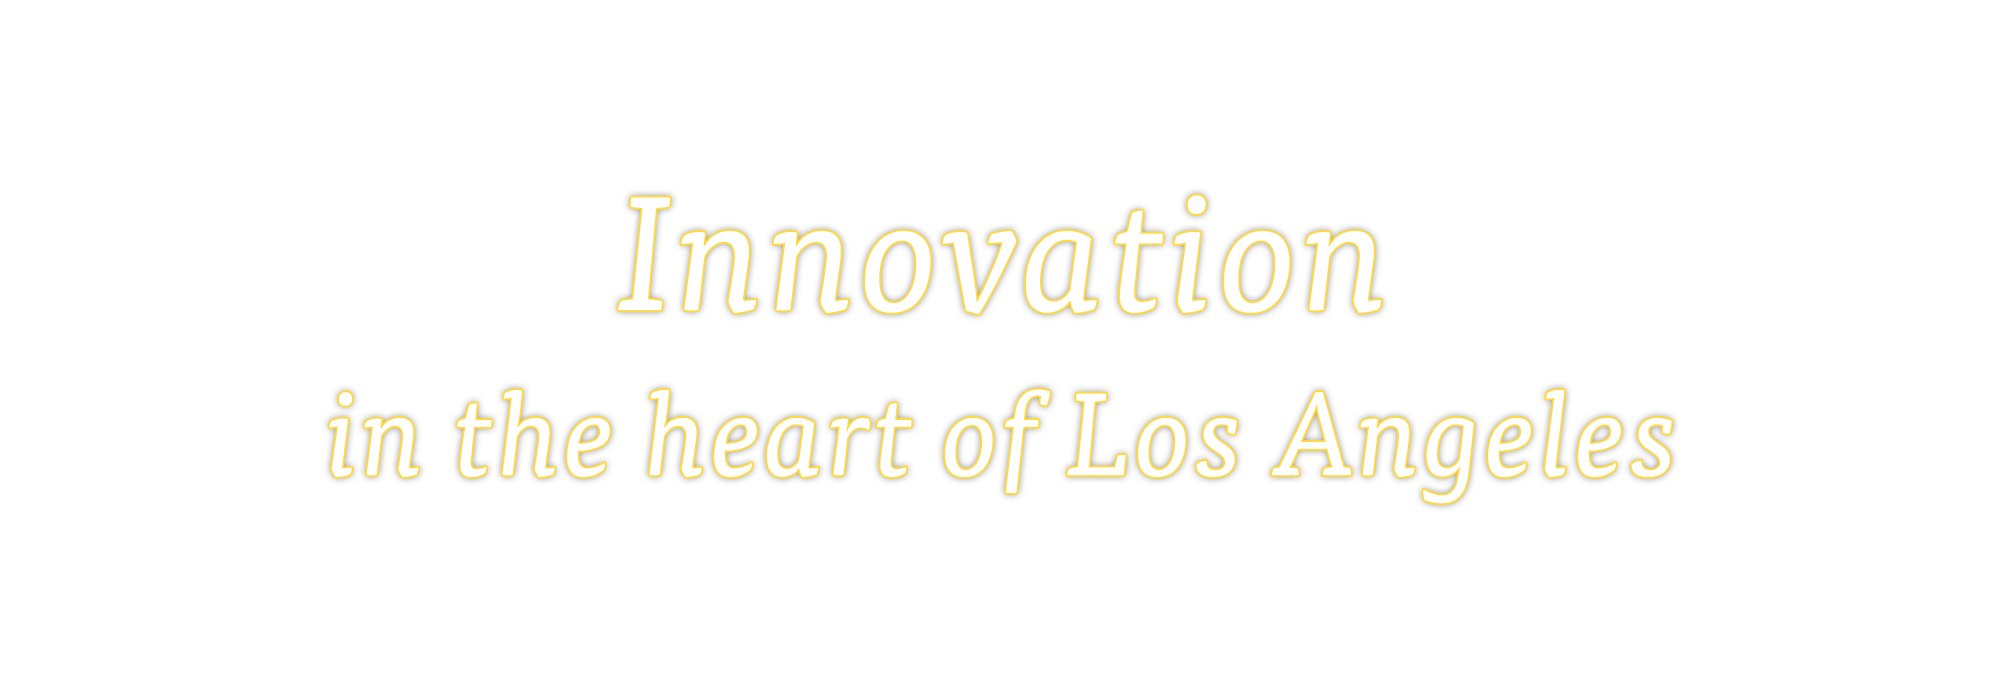 Innovation in the heart of Los Angeles